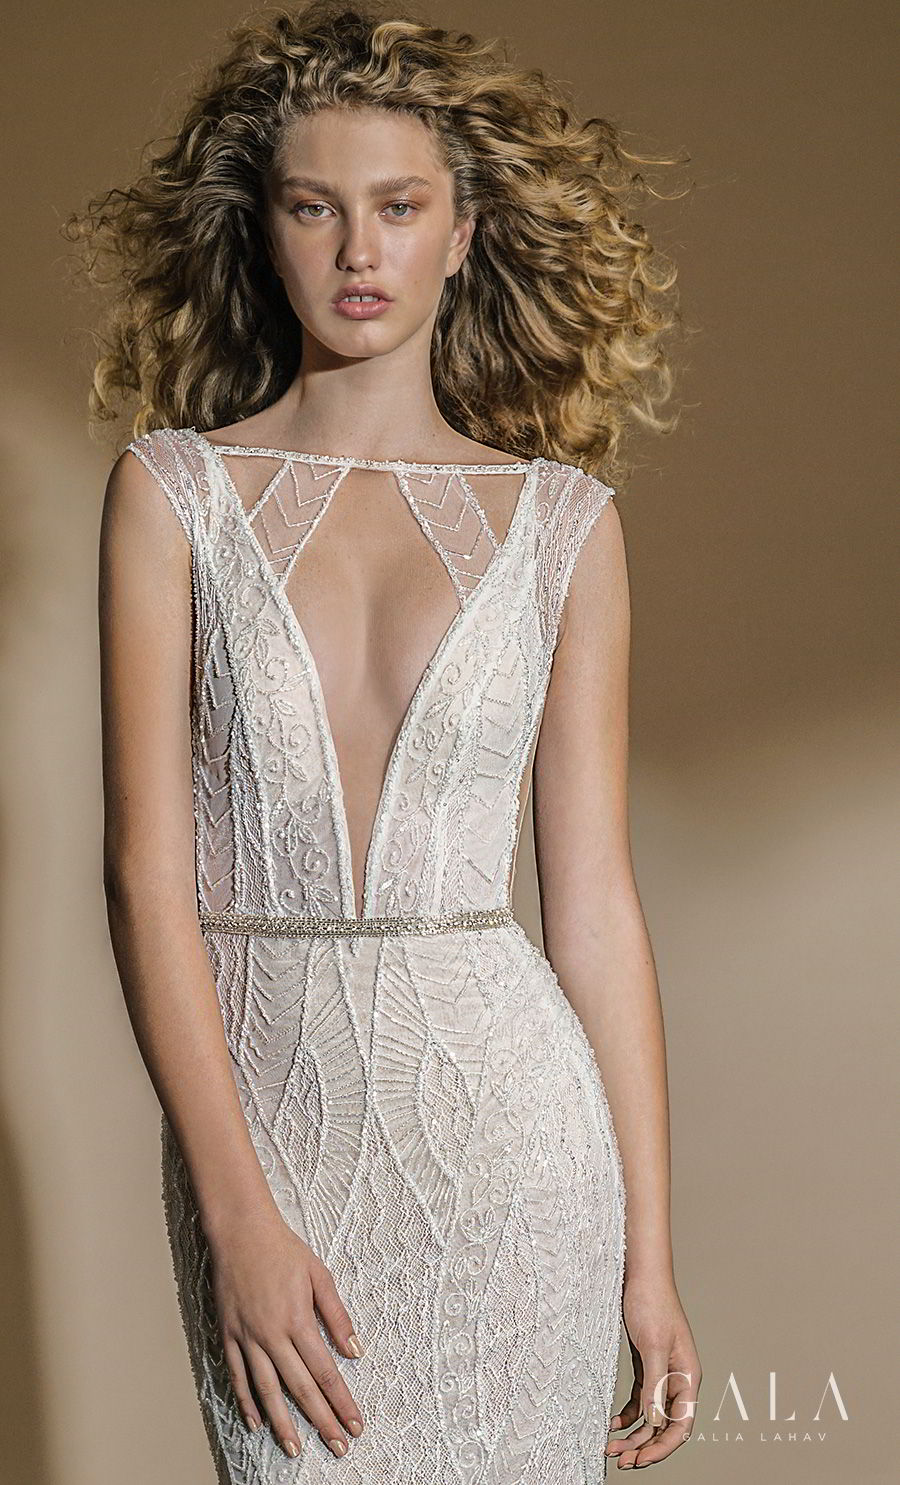 galia lahav gala 2019 bridal cap sleeves bateau deep plunging v neck full embellishment art deco elegant fit and flare sheath wedding dress open back chapel train (101) zv